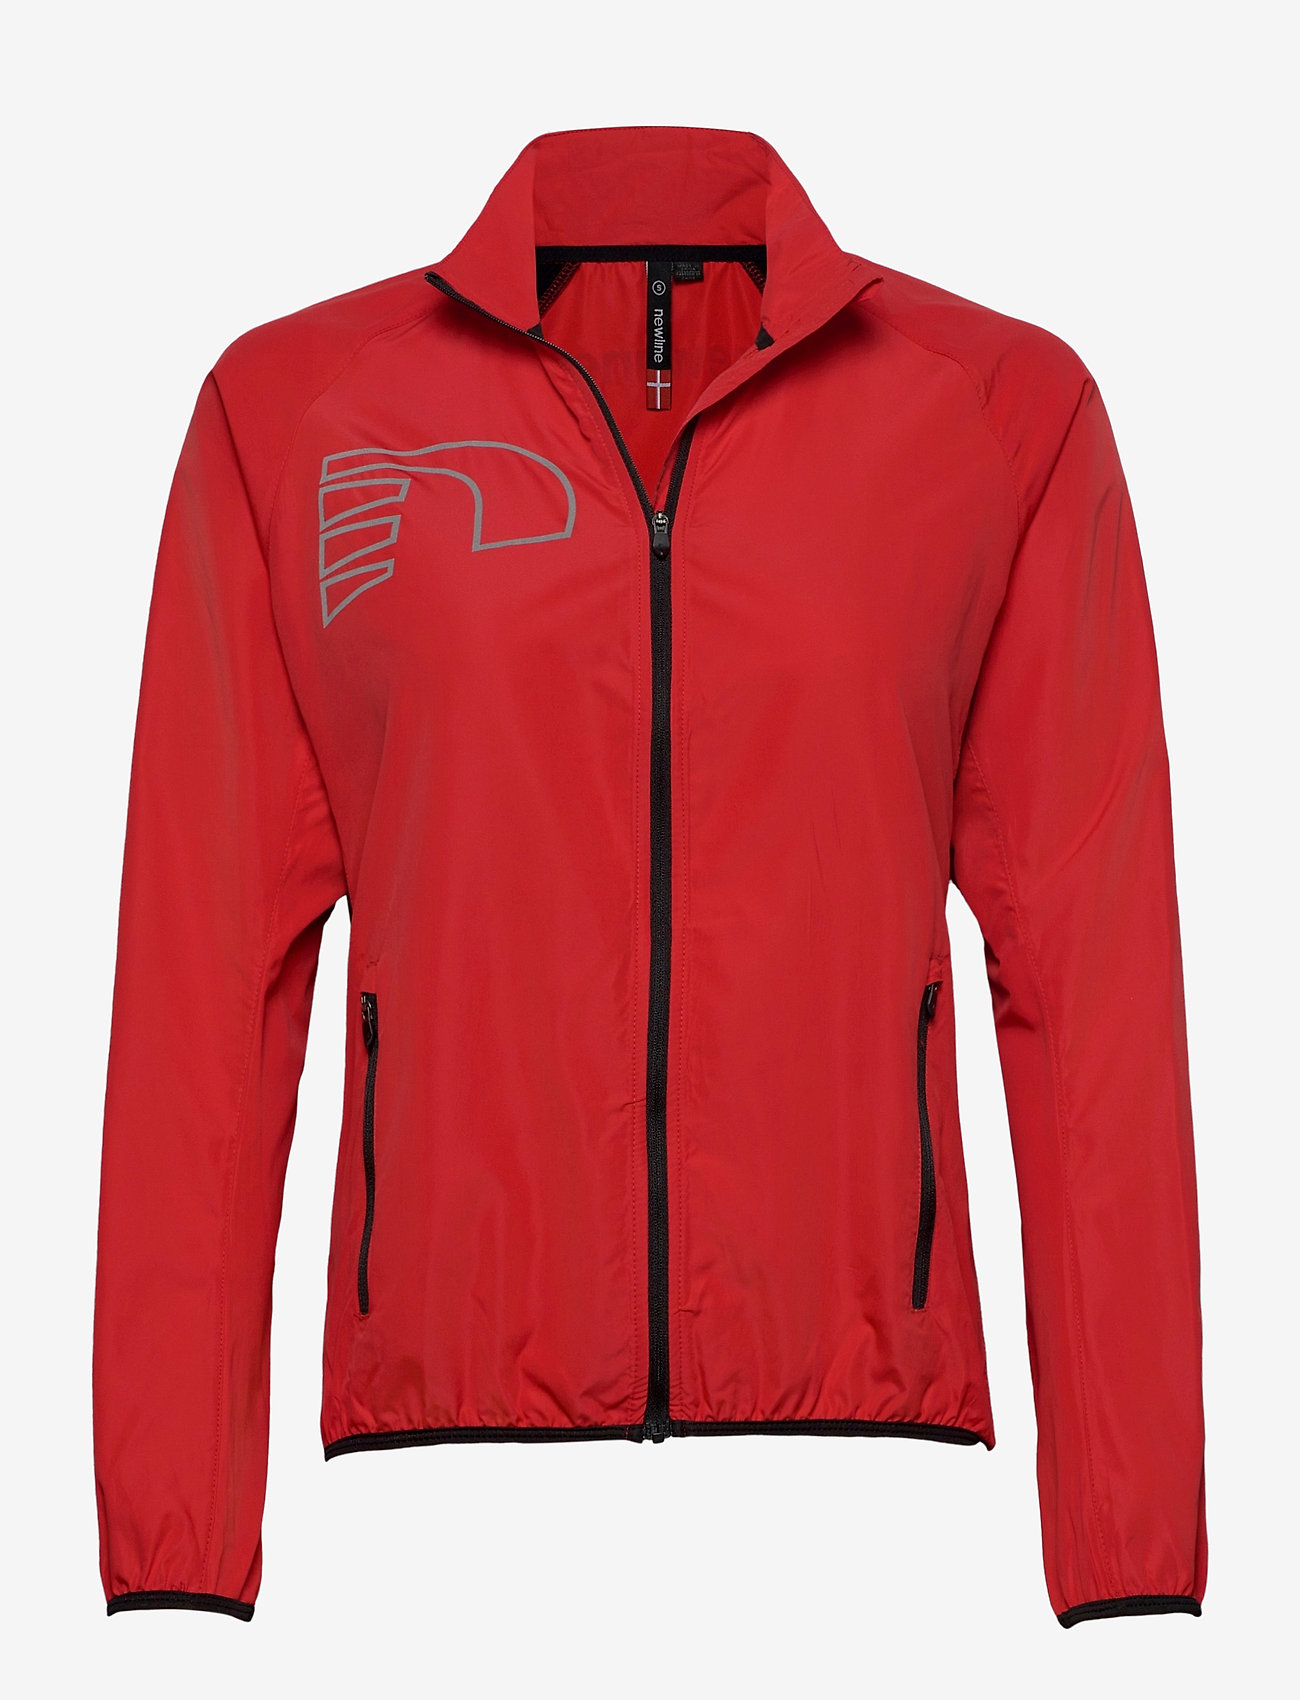 Newline - CORE JACKET - training jackets - red - 0